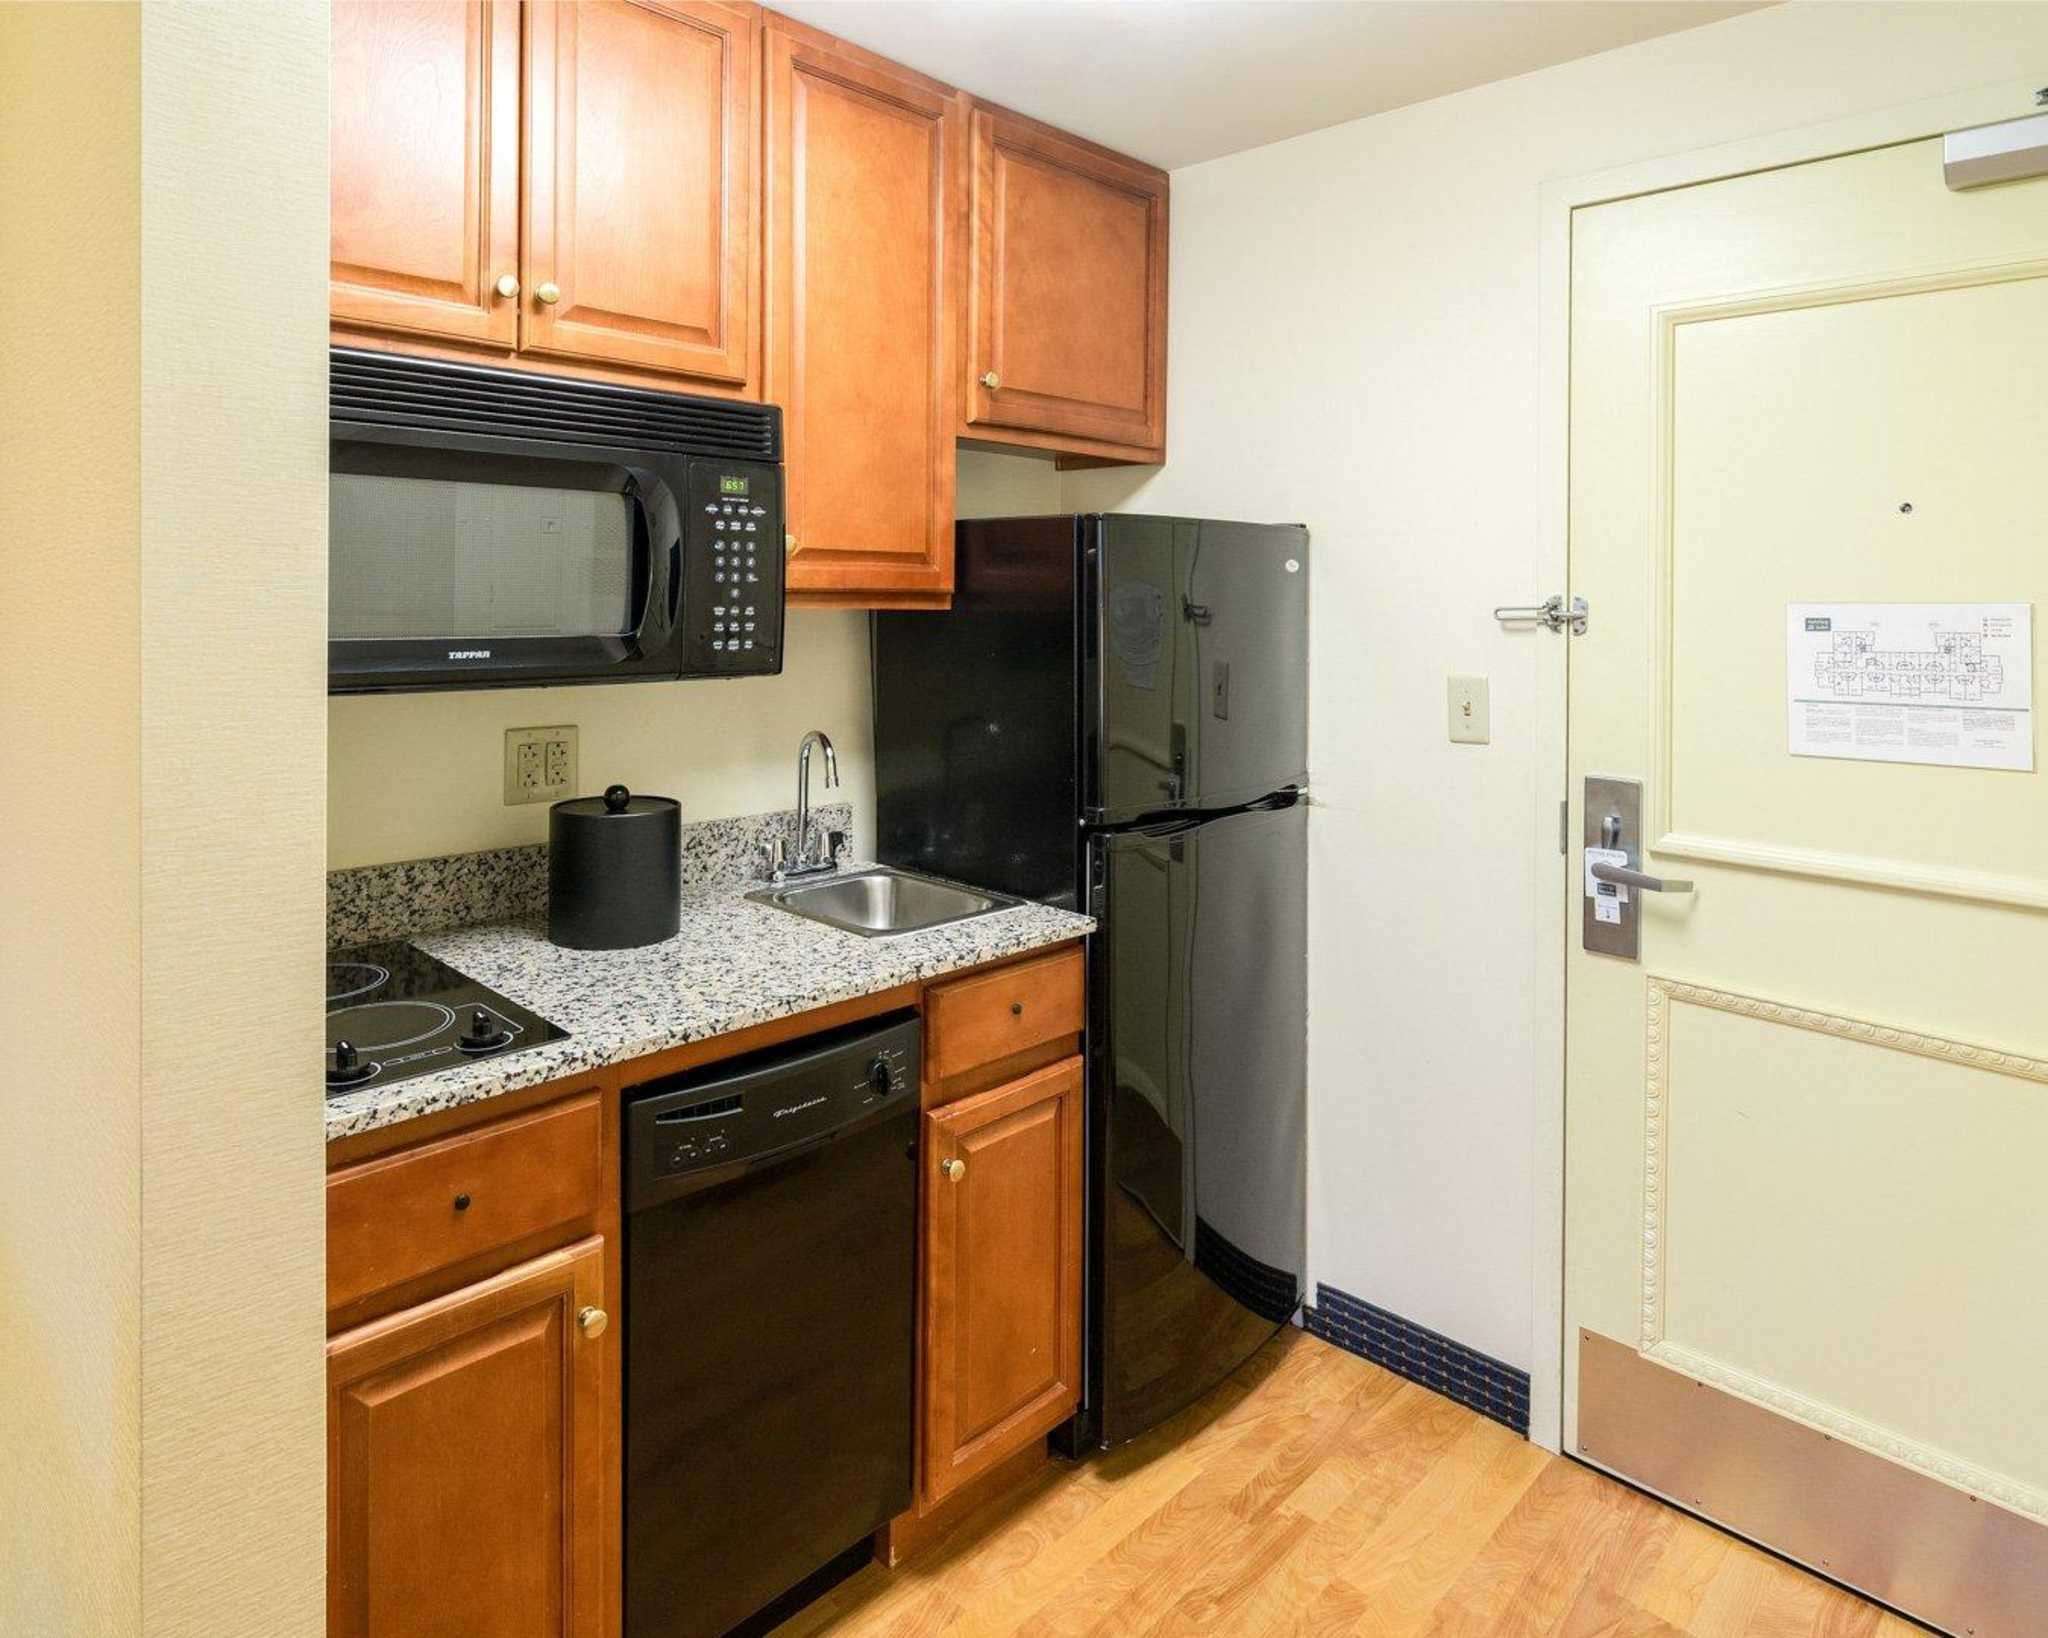 MainStay Suites image 20